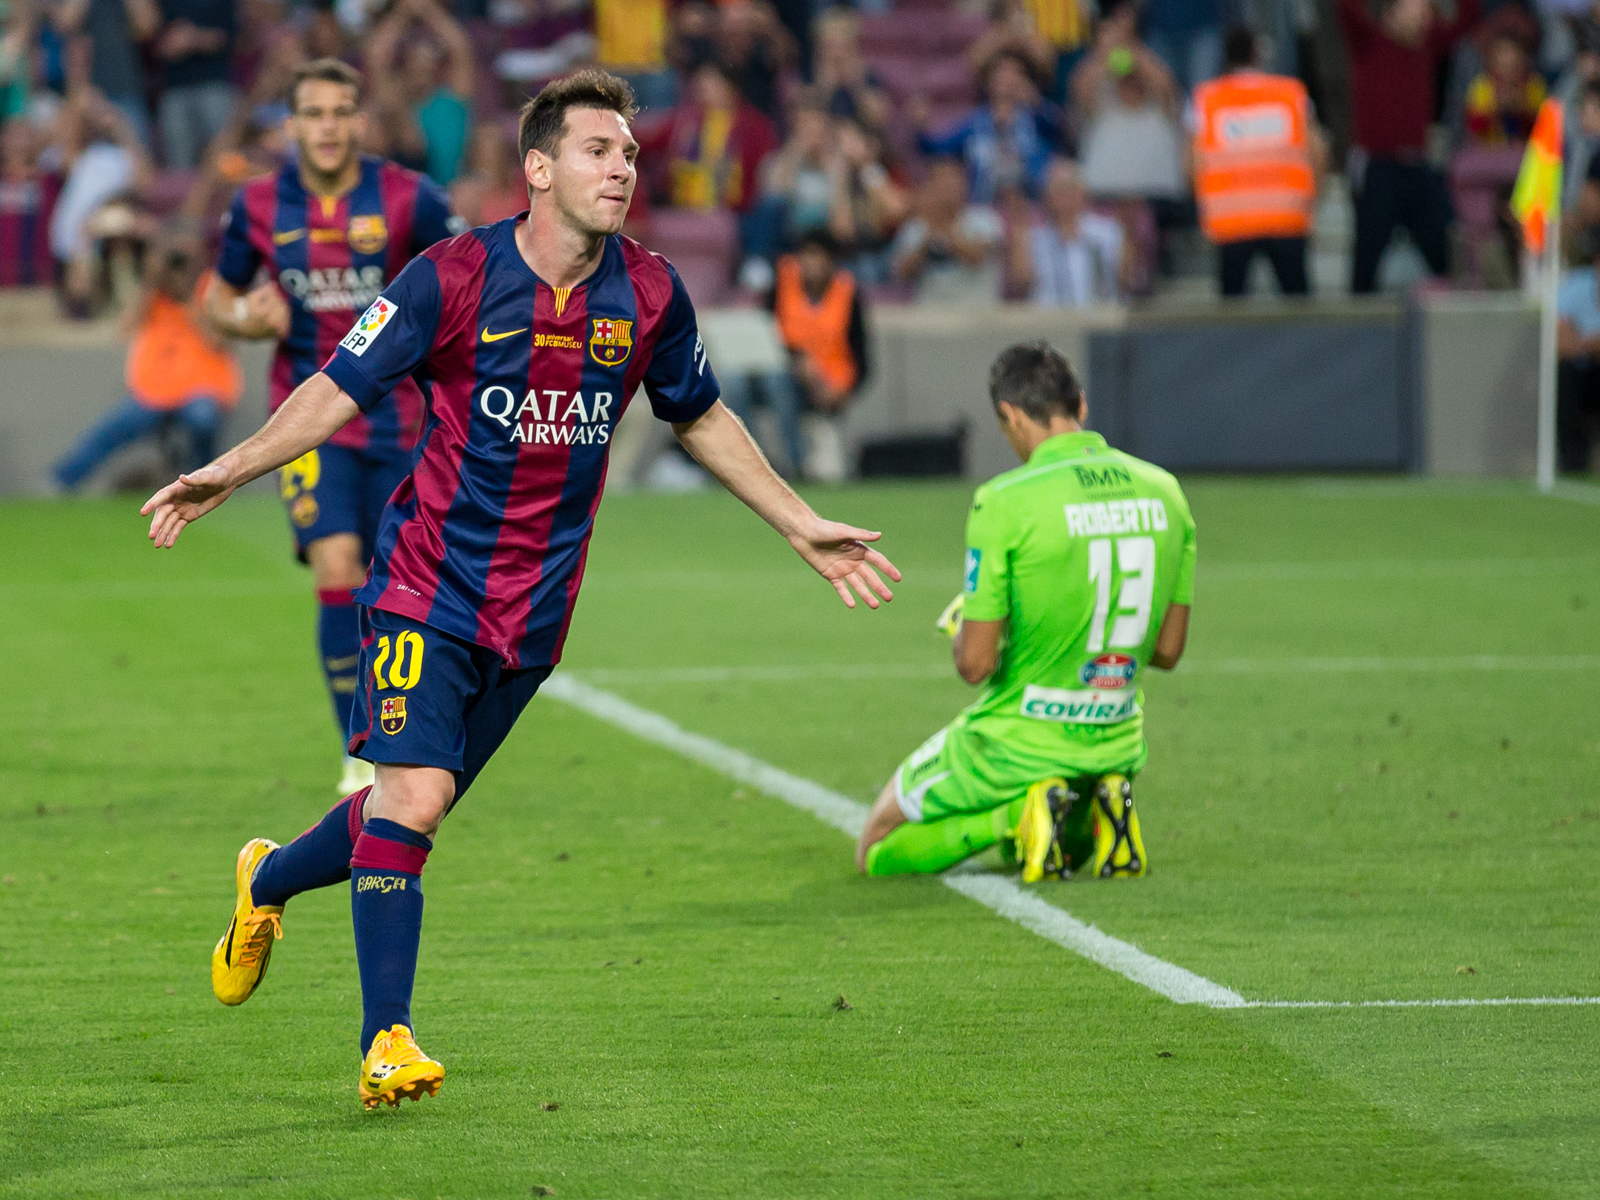 Messi celebrating scoring a goal against Granada CF in October 2014.